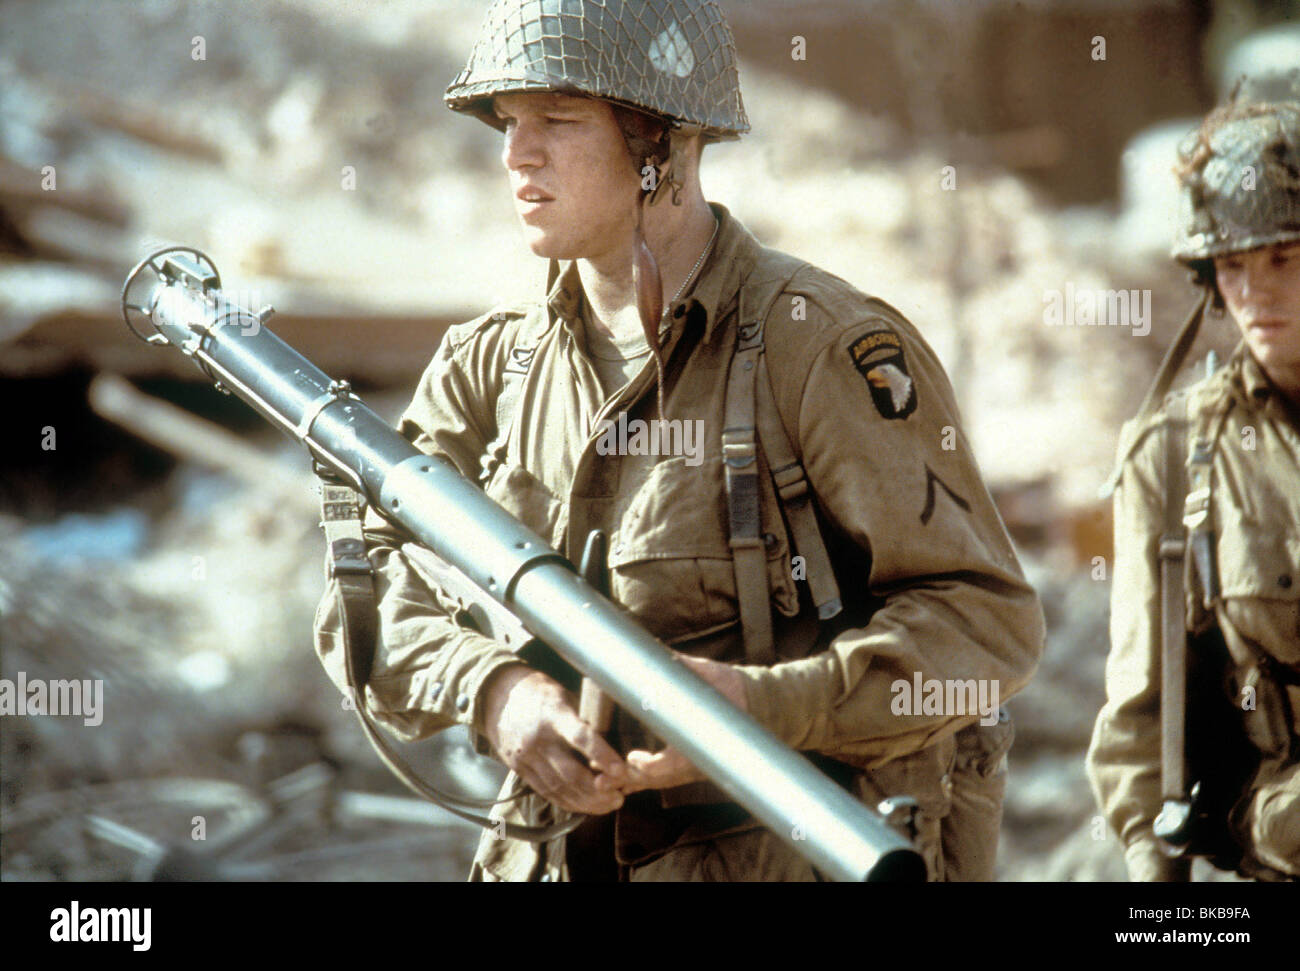 SAVING PRIVATE RYAN (1998) MATT DAMON SAPR 120 - Stock Image